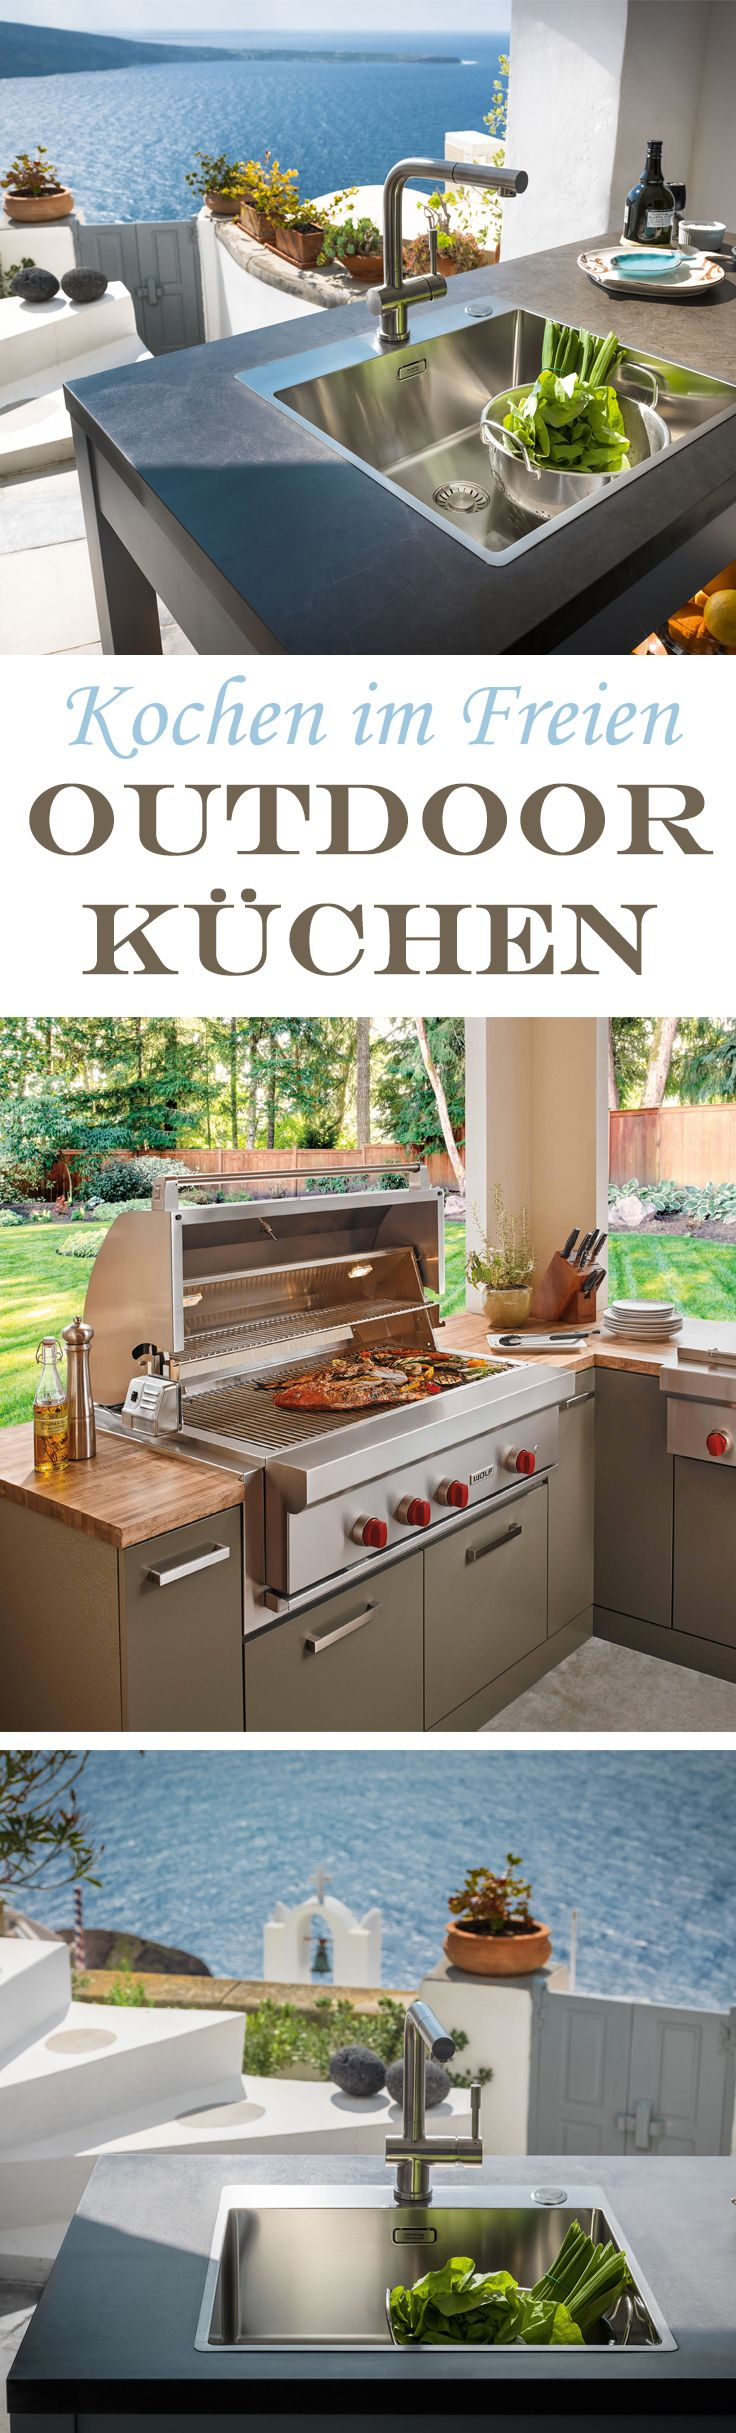 17 best Küchentrends images on Pinterest | Life styles and Living styles